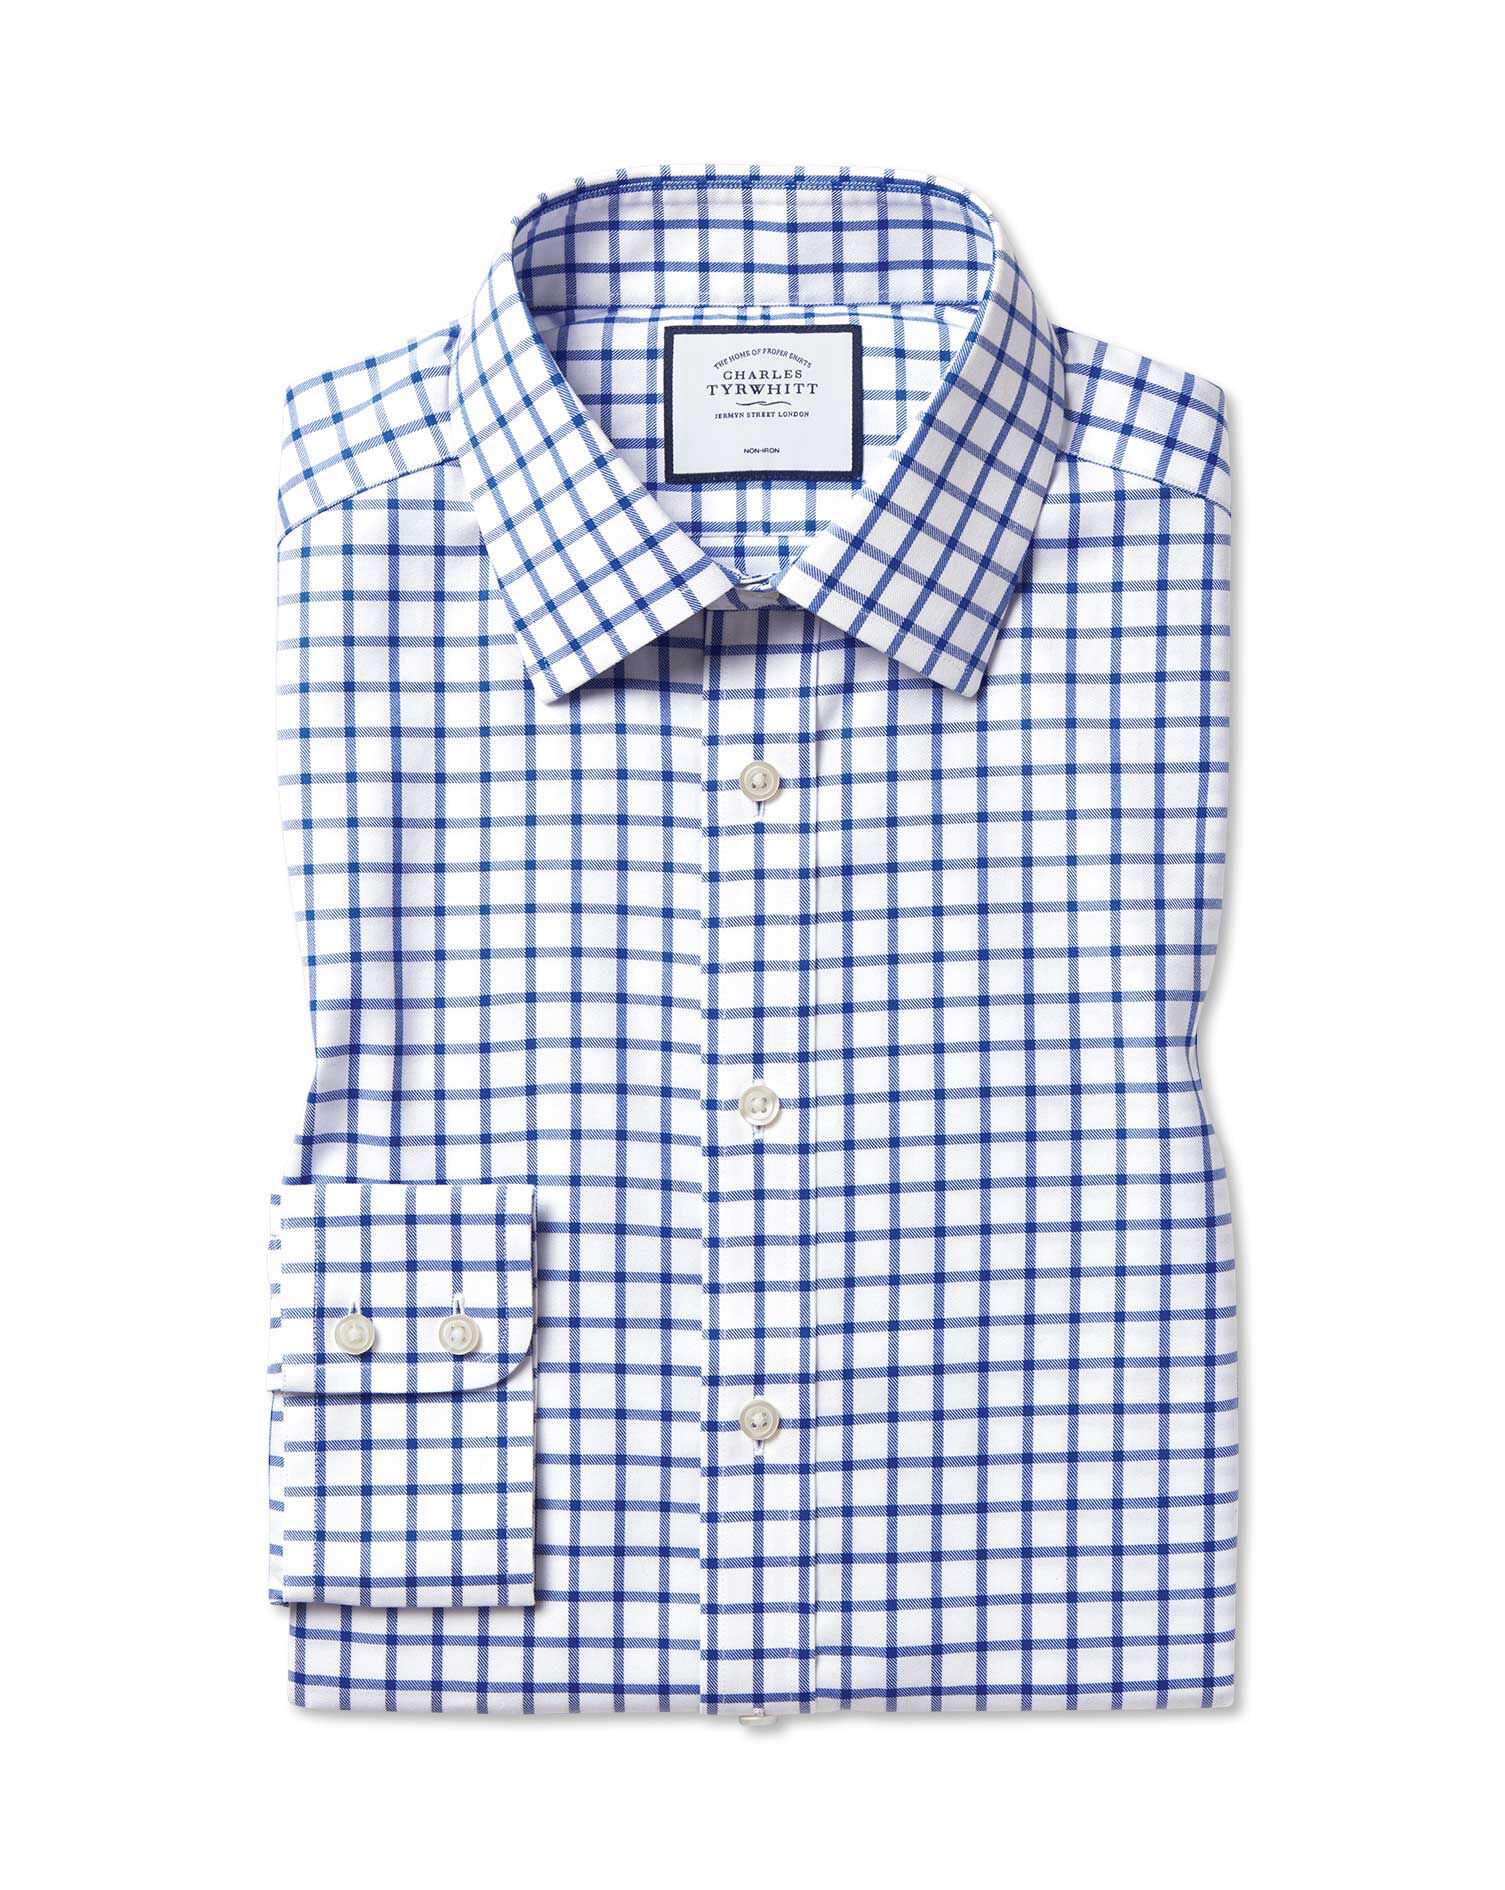 Slim Fit Non-Iron Twill Grid Check Royal Blue Cotton Formal Shirt Double Cuff Size 18/35 by Charles